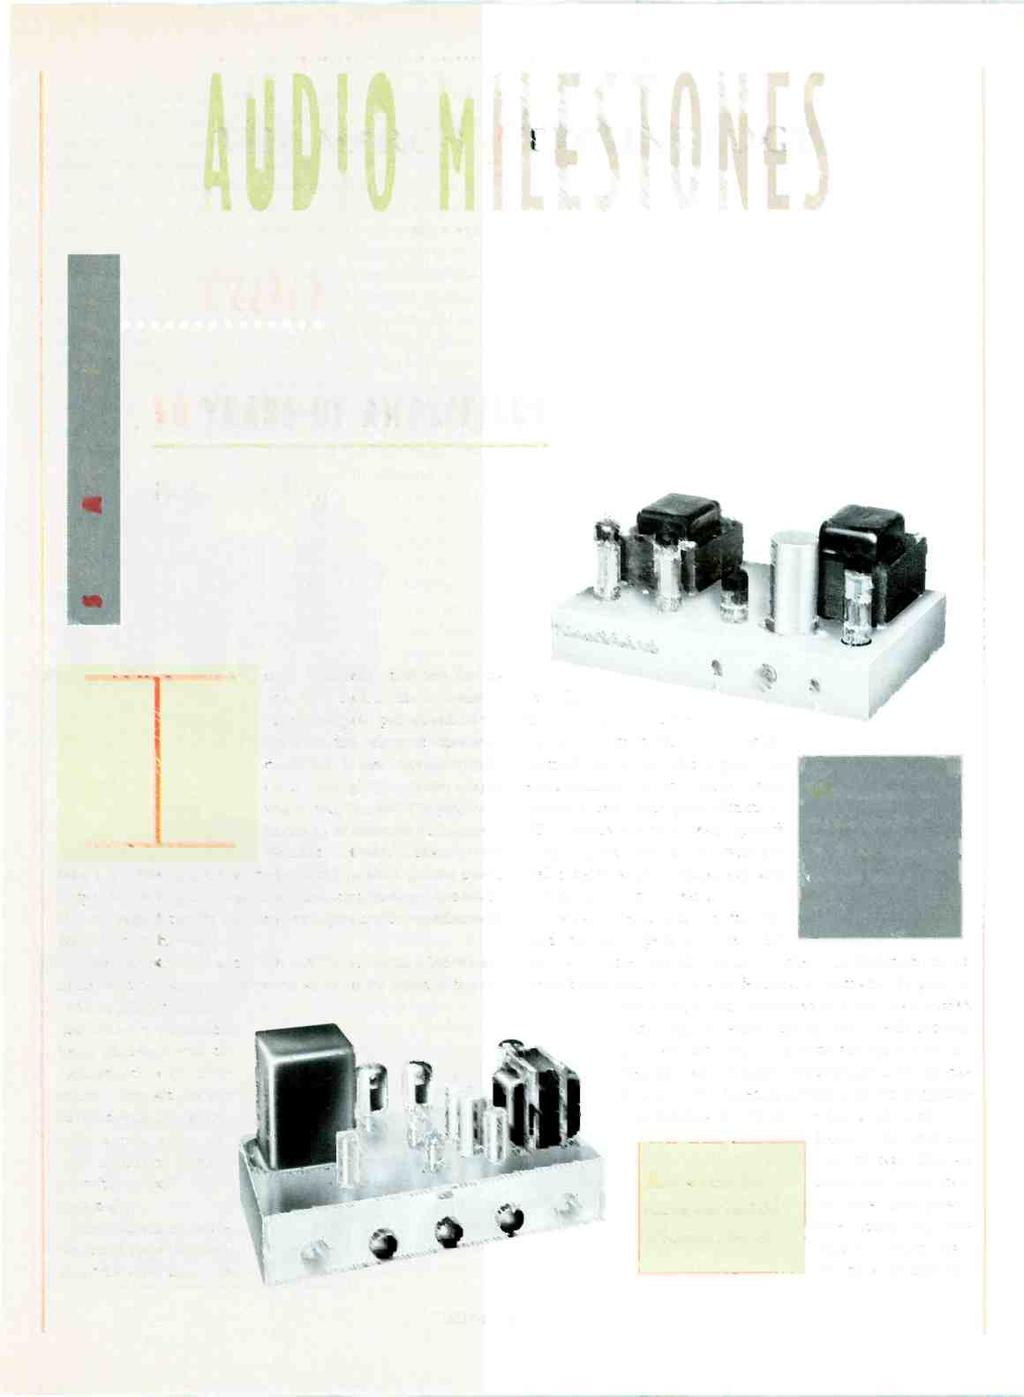 THE MARCH TECHNOLOGY two 50 YEARS 0F AMPLIFIERS oy Bascom King n the beginning, there was the triode.